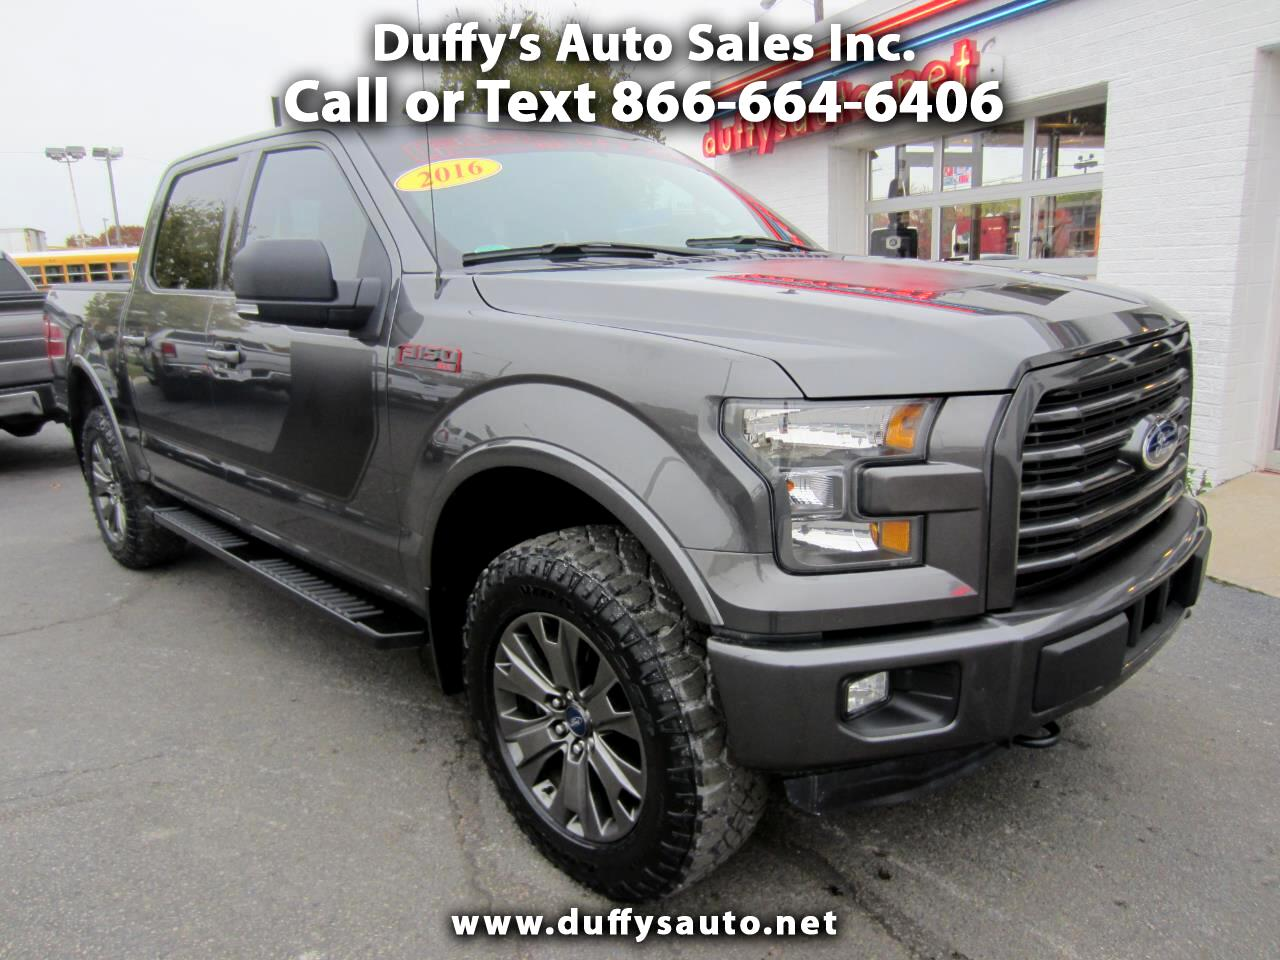 2016 Ford F-150 4WD SuperCrew Sport